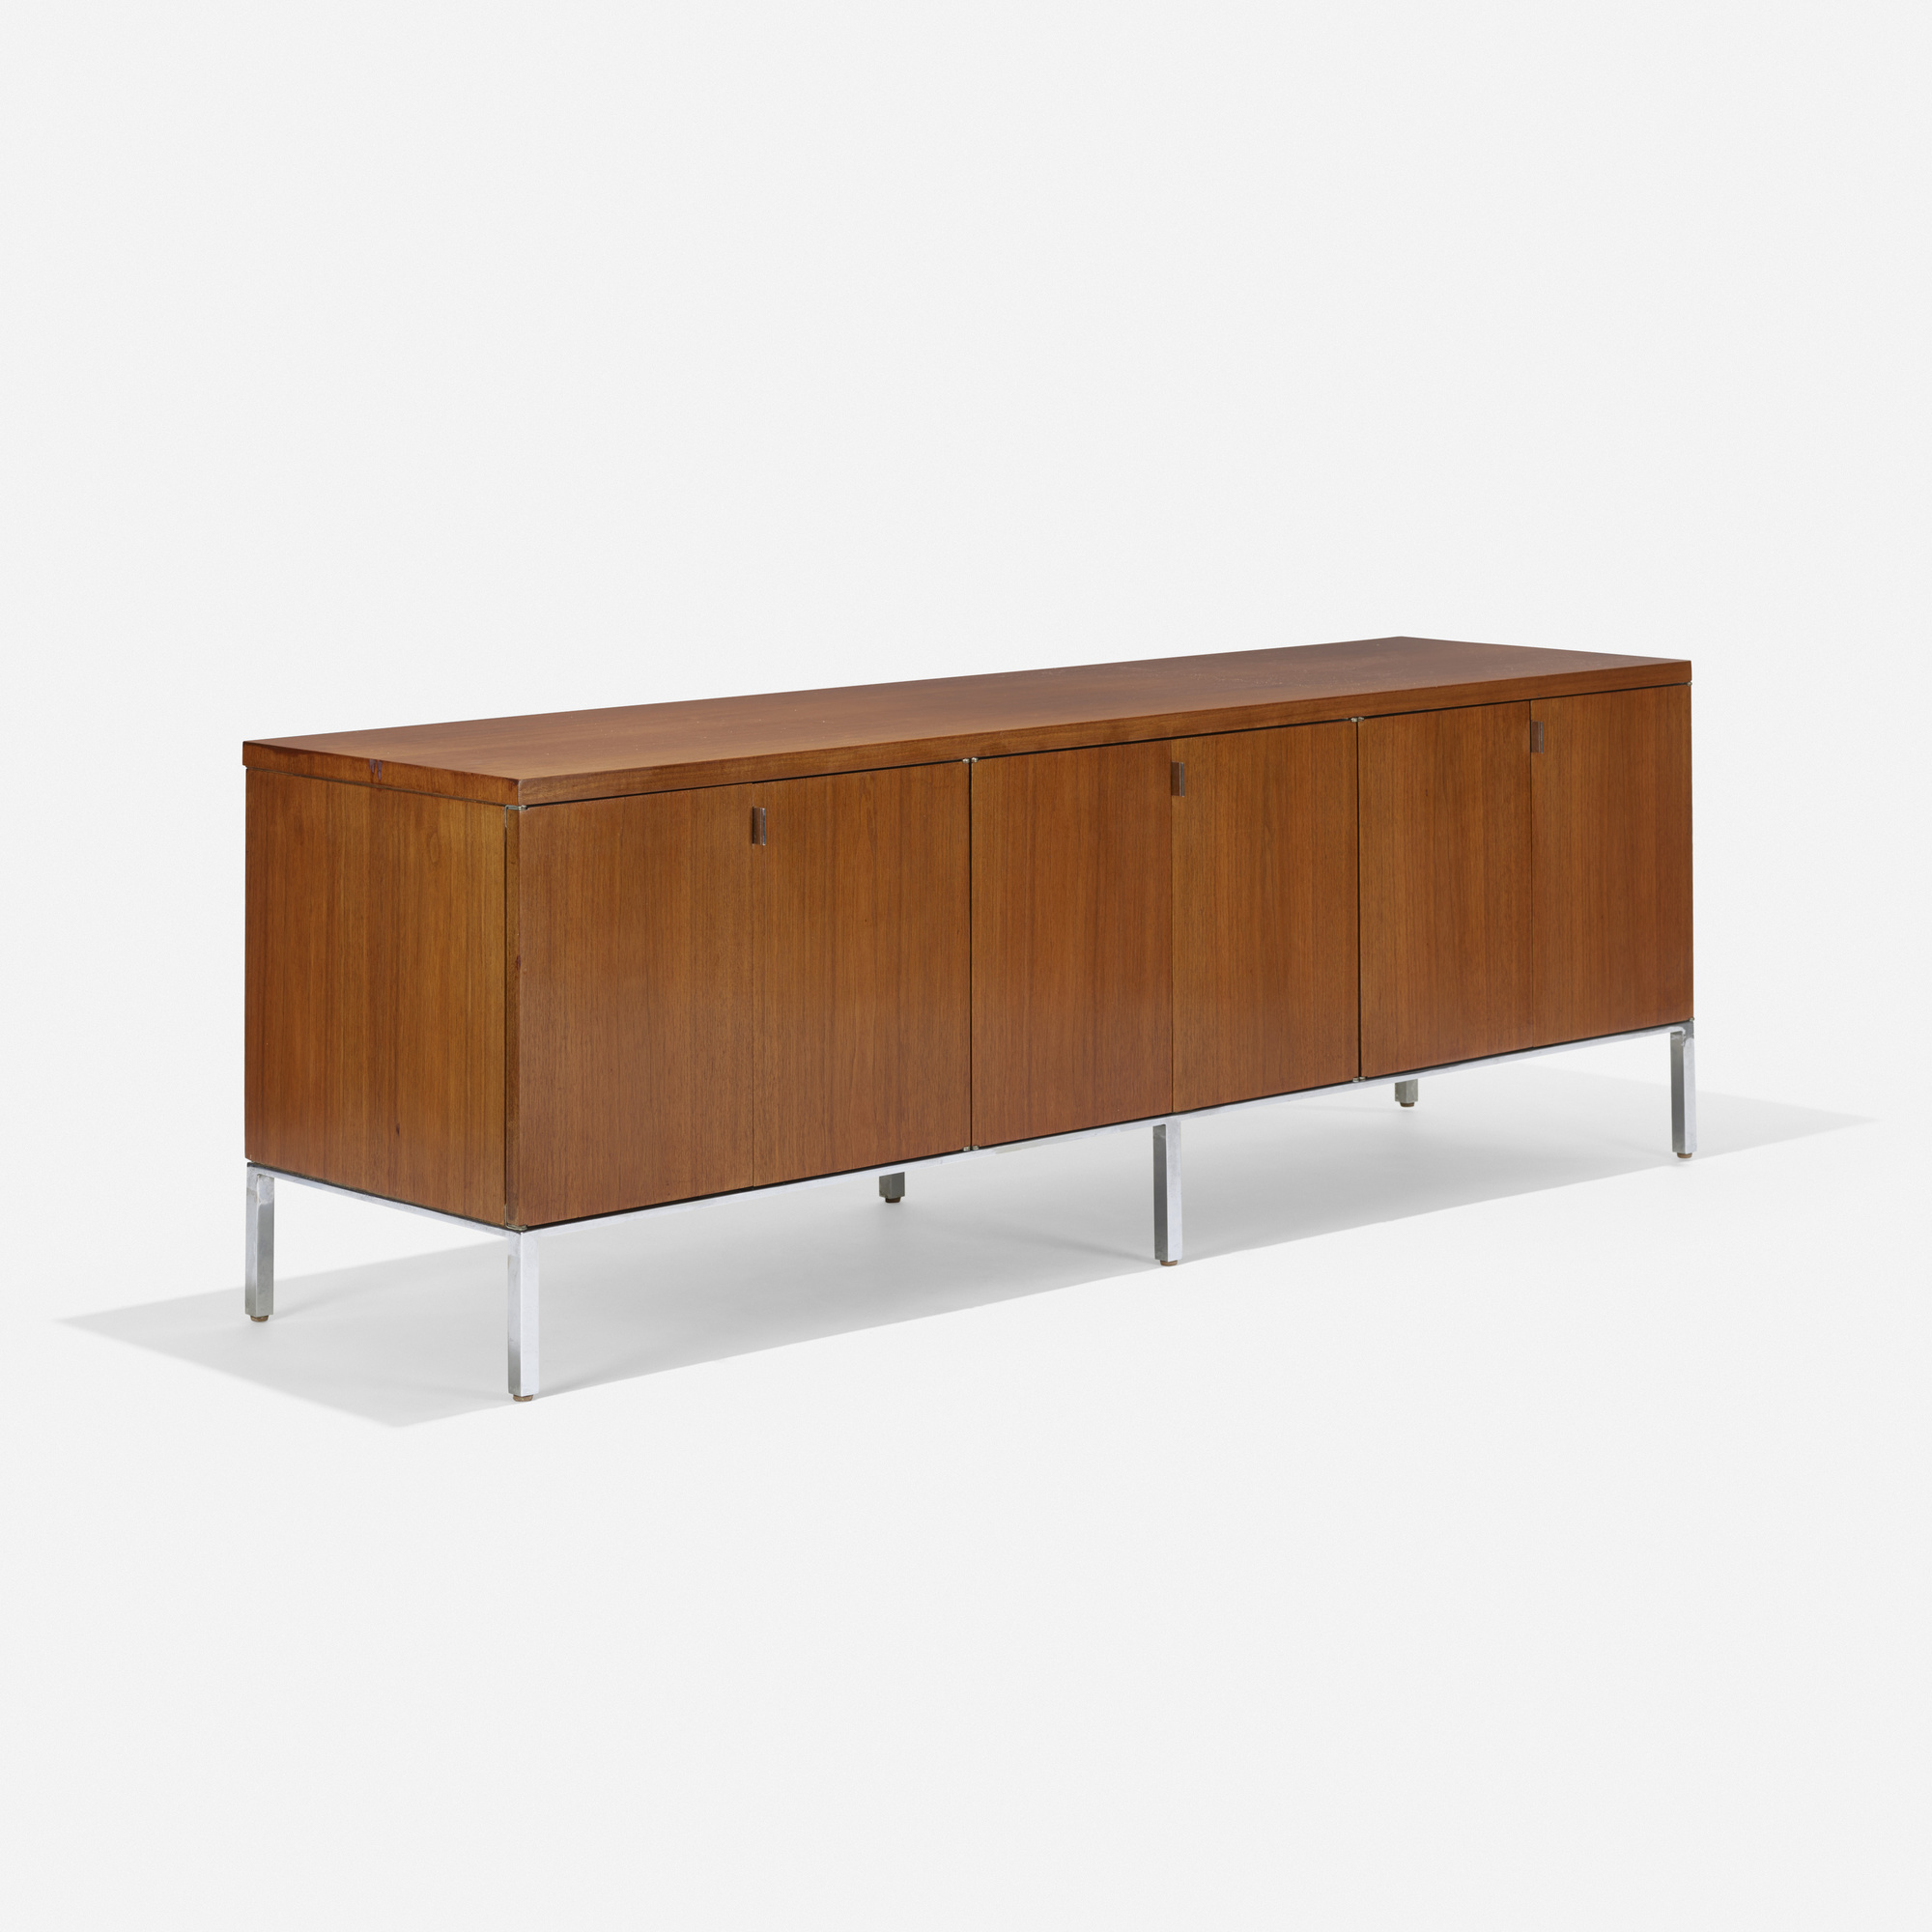 149: Florence Knoll / cabinet (1 of 4)